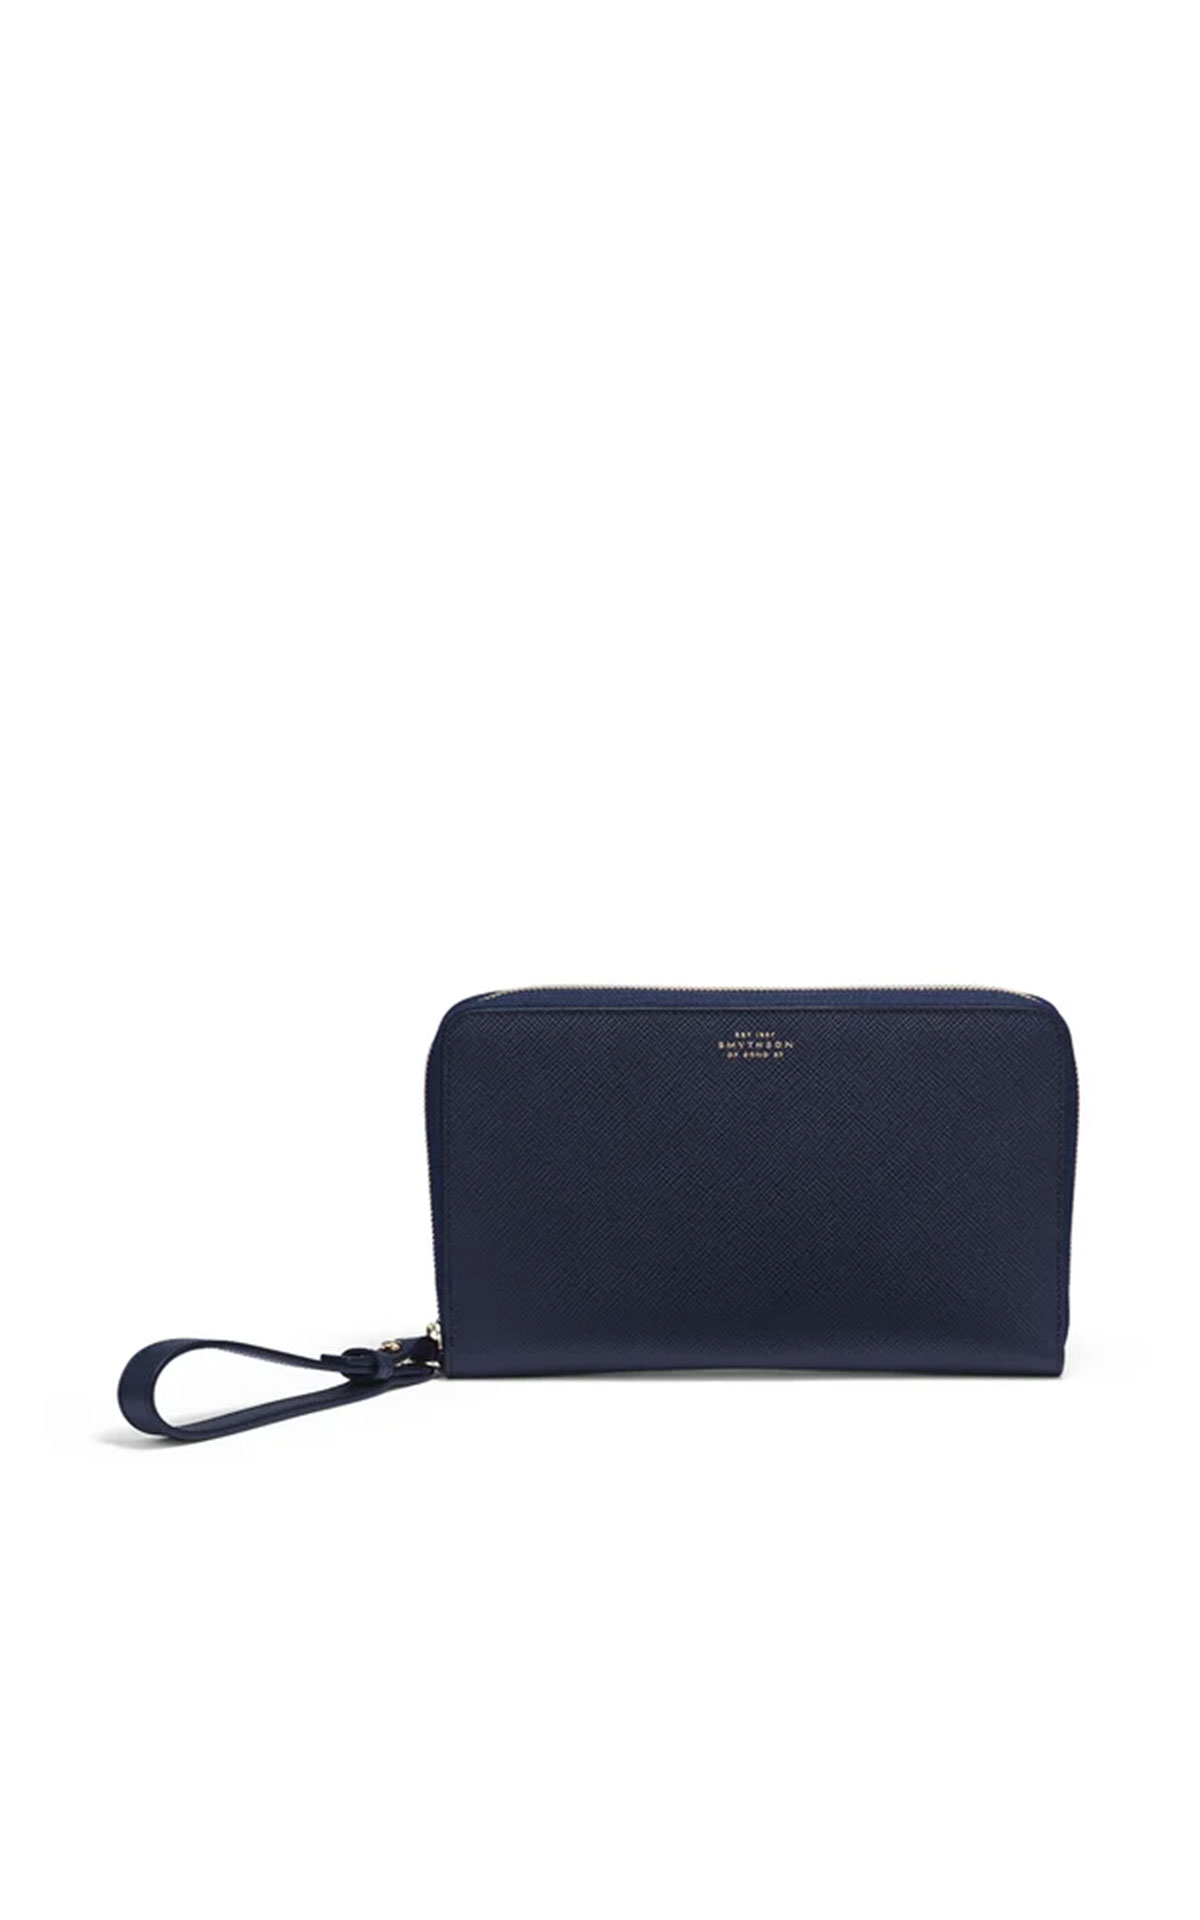 Smythson Panama long haul travel wallet from Bicester Village